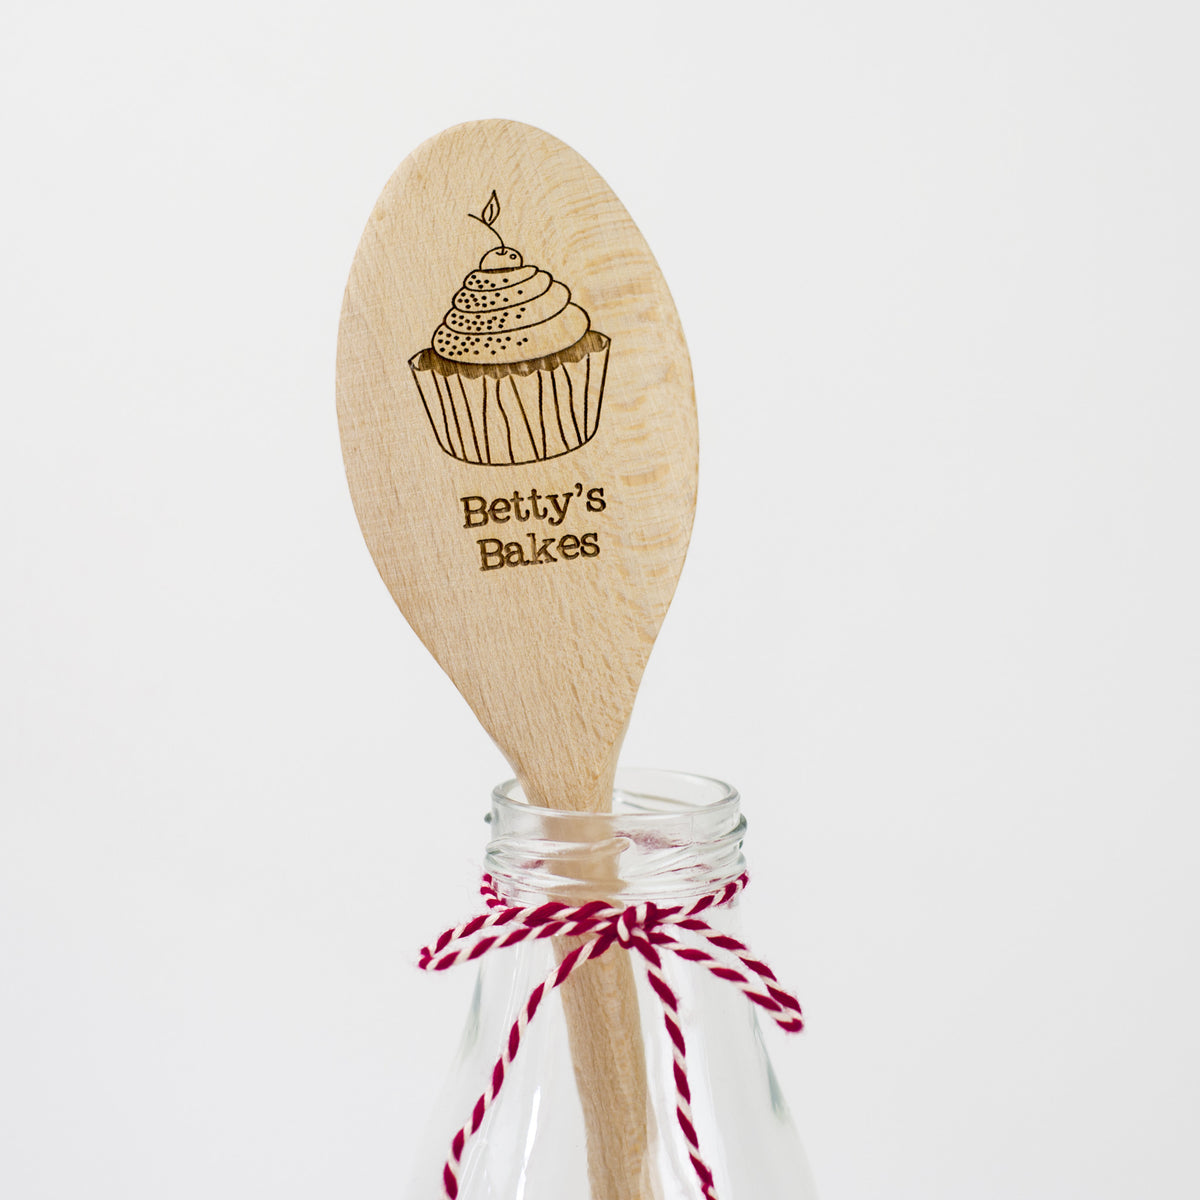 Personalised Wooden Cupcake Spoon - Cupcake with Cherry